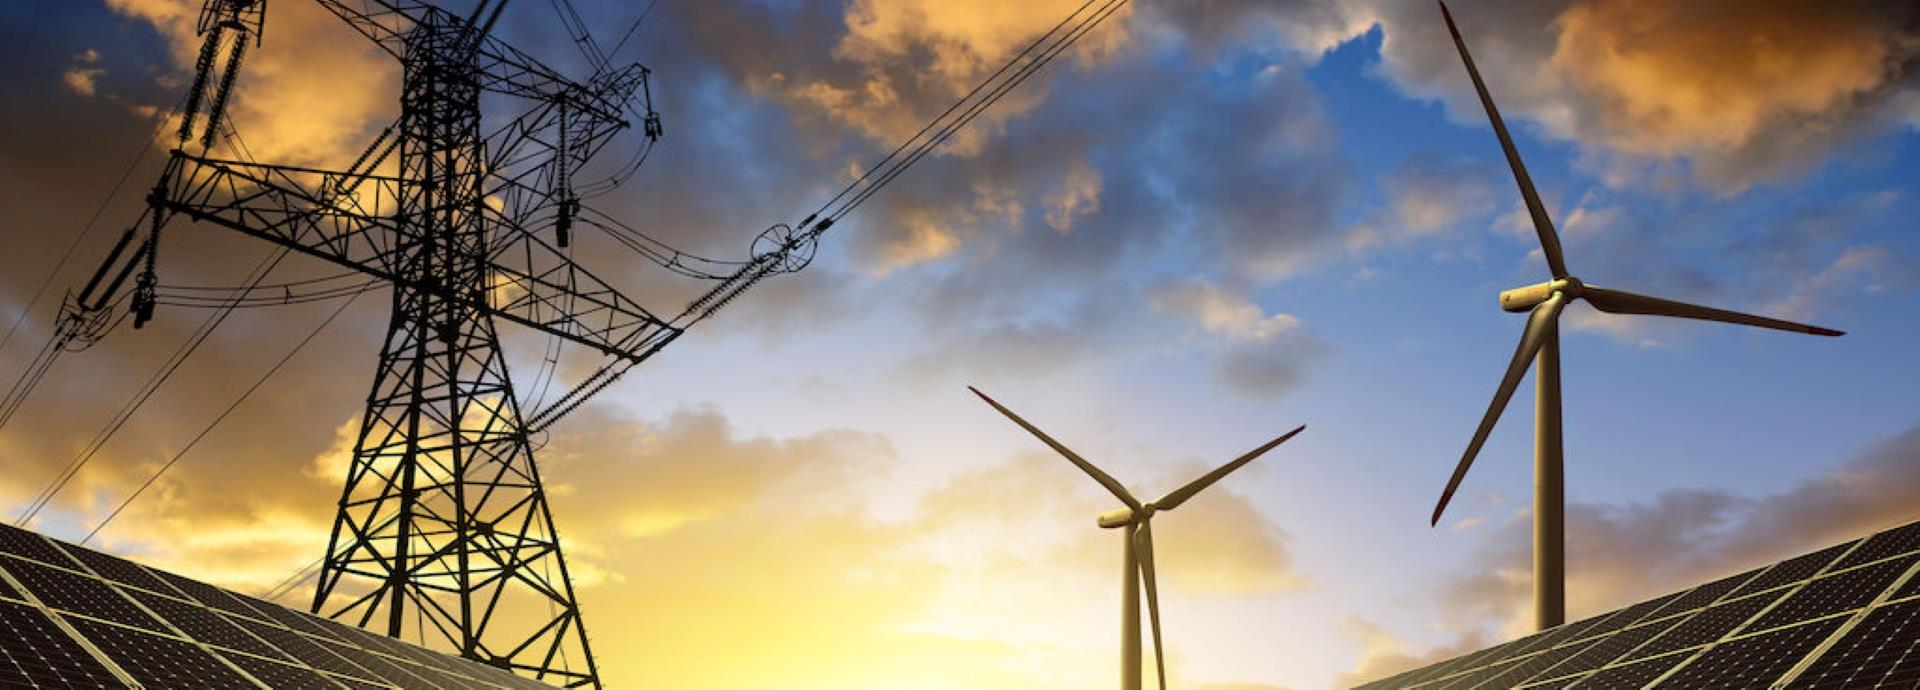 energiewende-germany-s-quest-to-achieve-a-100-renewable-energy-future_resized